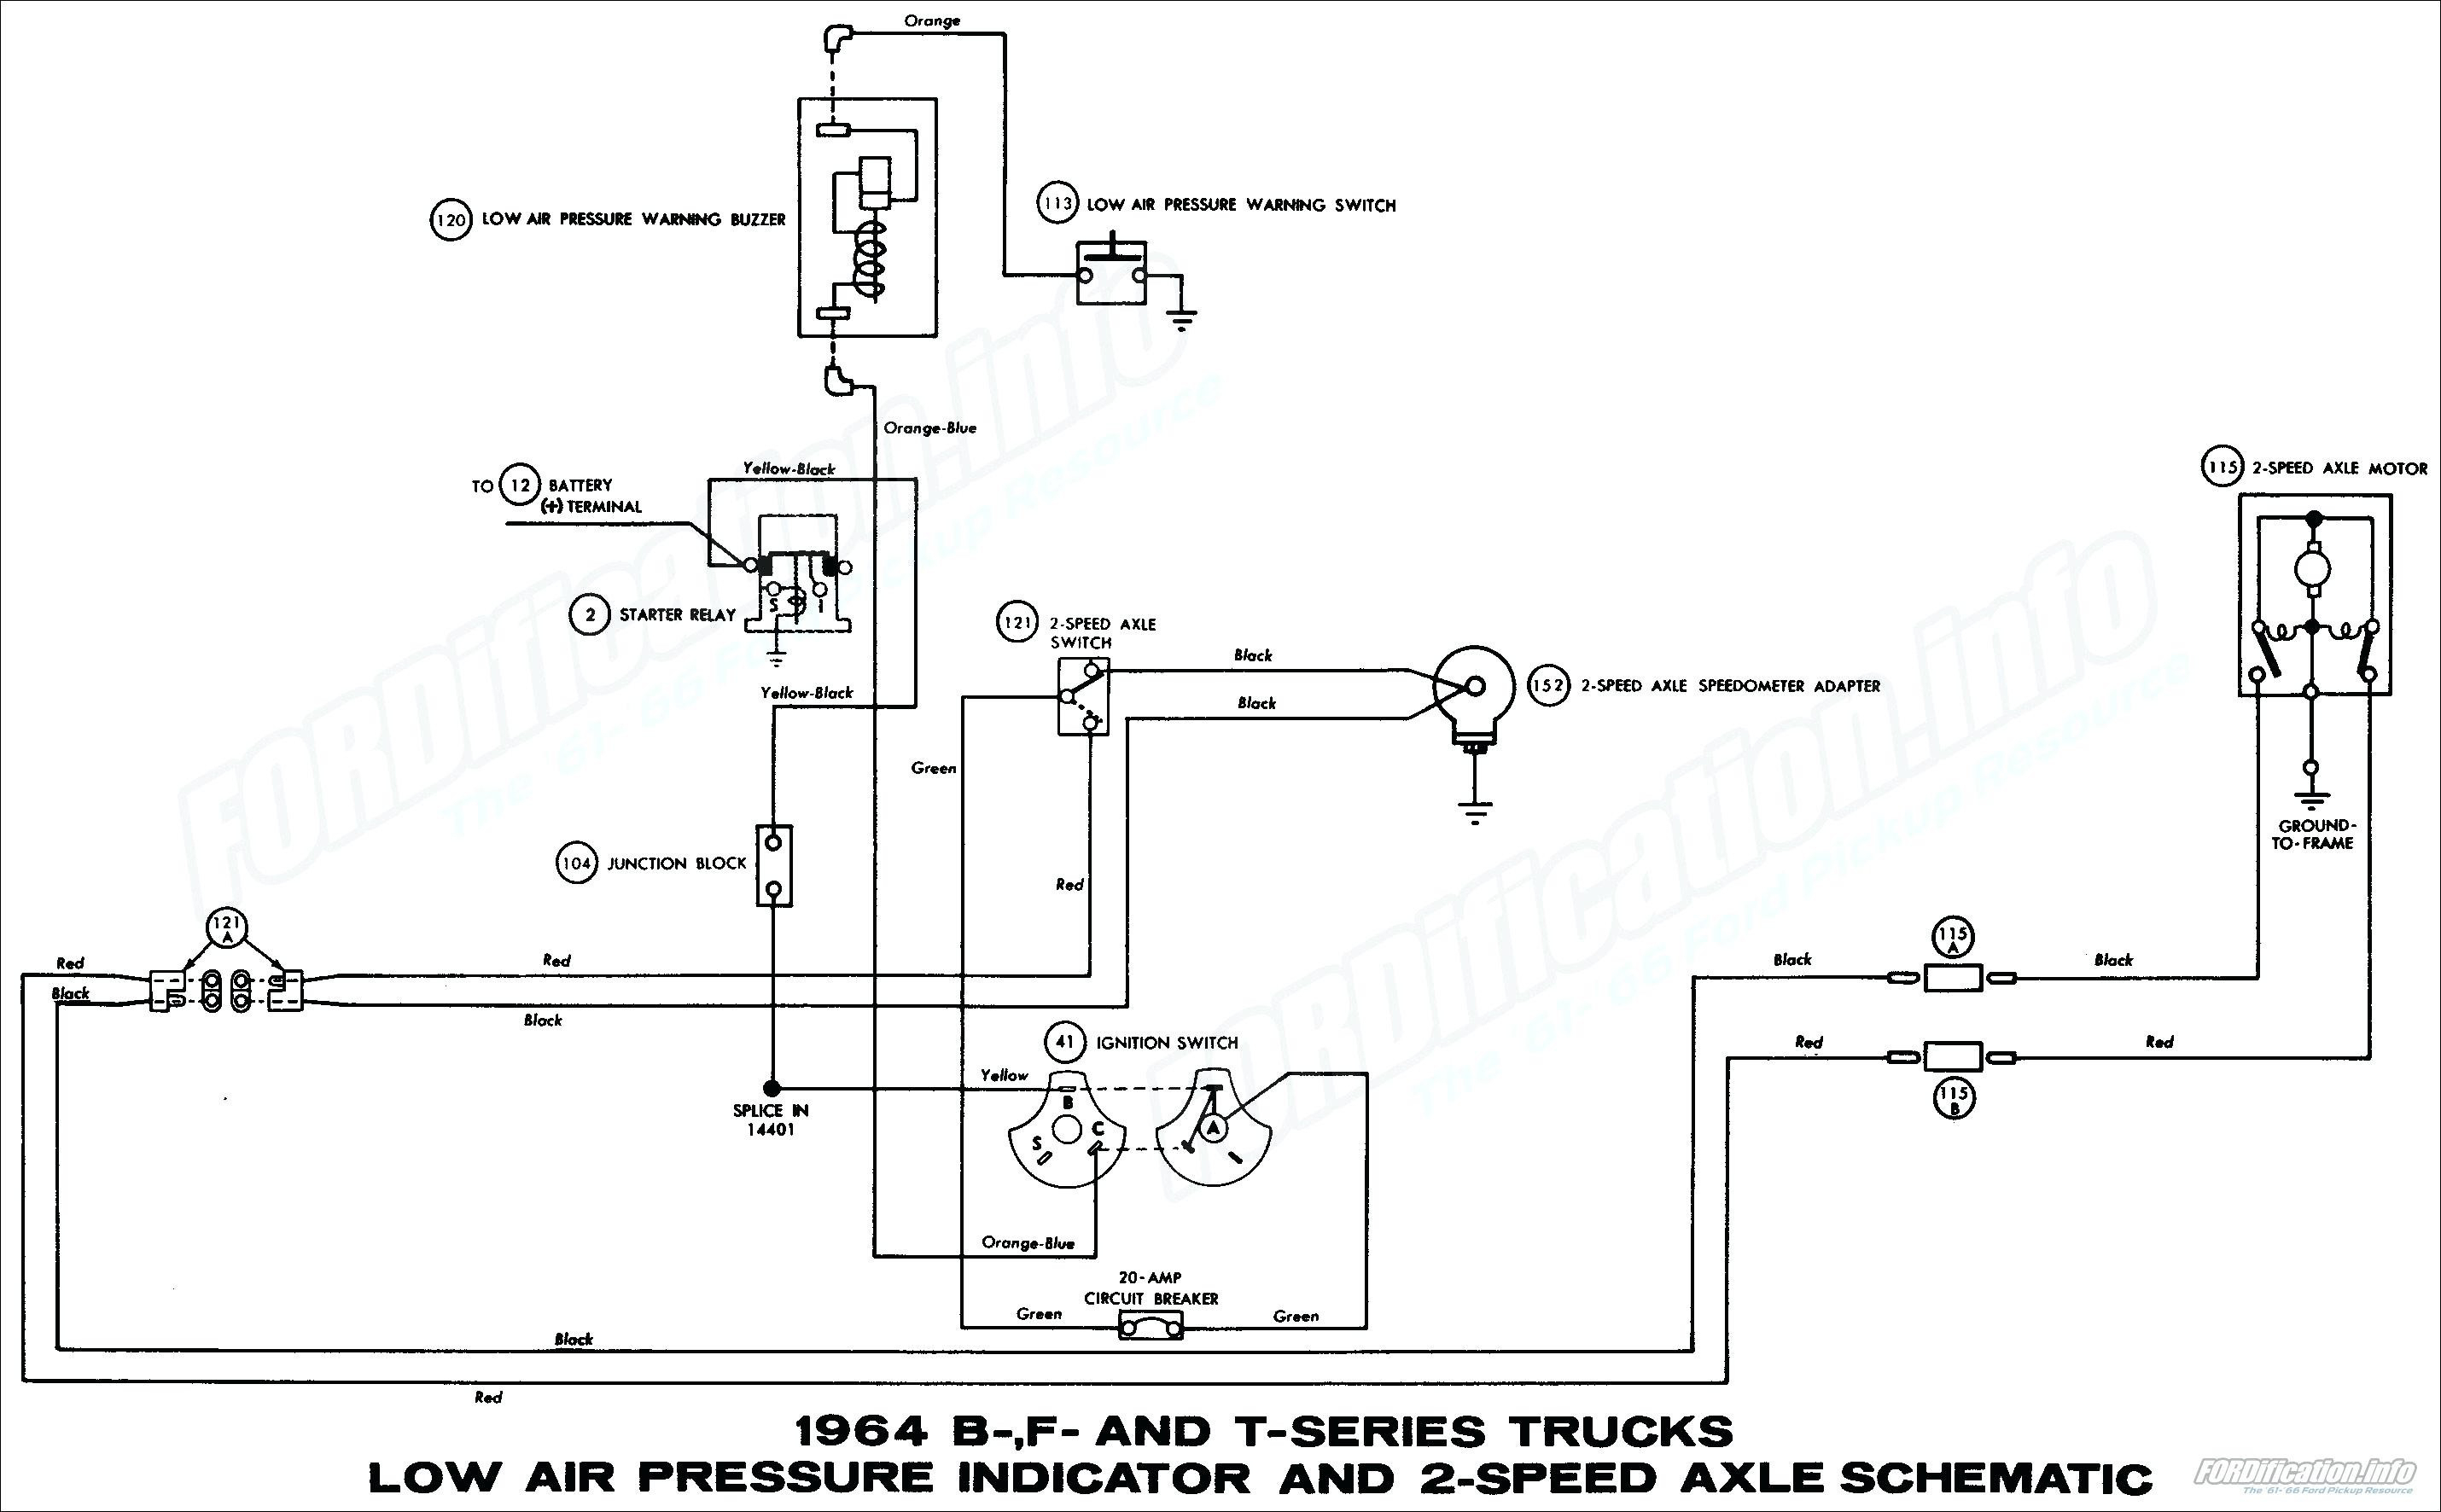 901 Ford Tractor Wiring Diagram 3 Phase 4 Wire Meter Base Diagram Usb Cable Jimny Waystar Fr